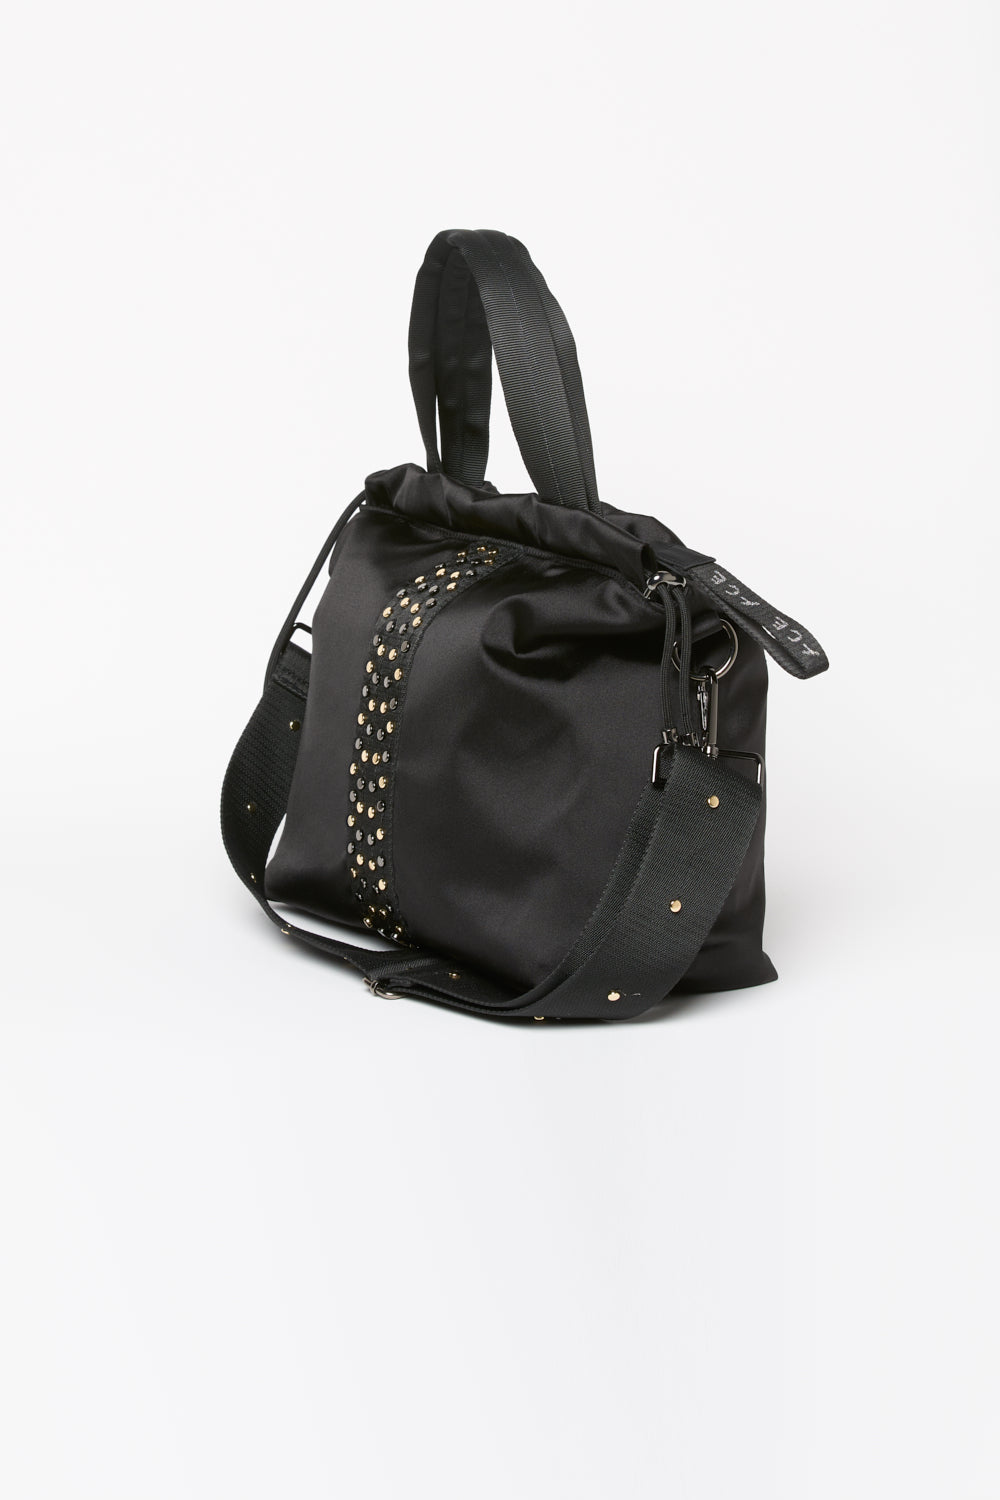 ACE Urban Tote Bag Black side view